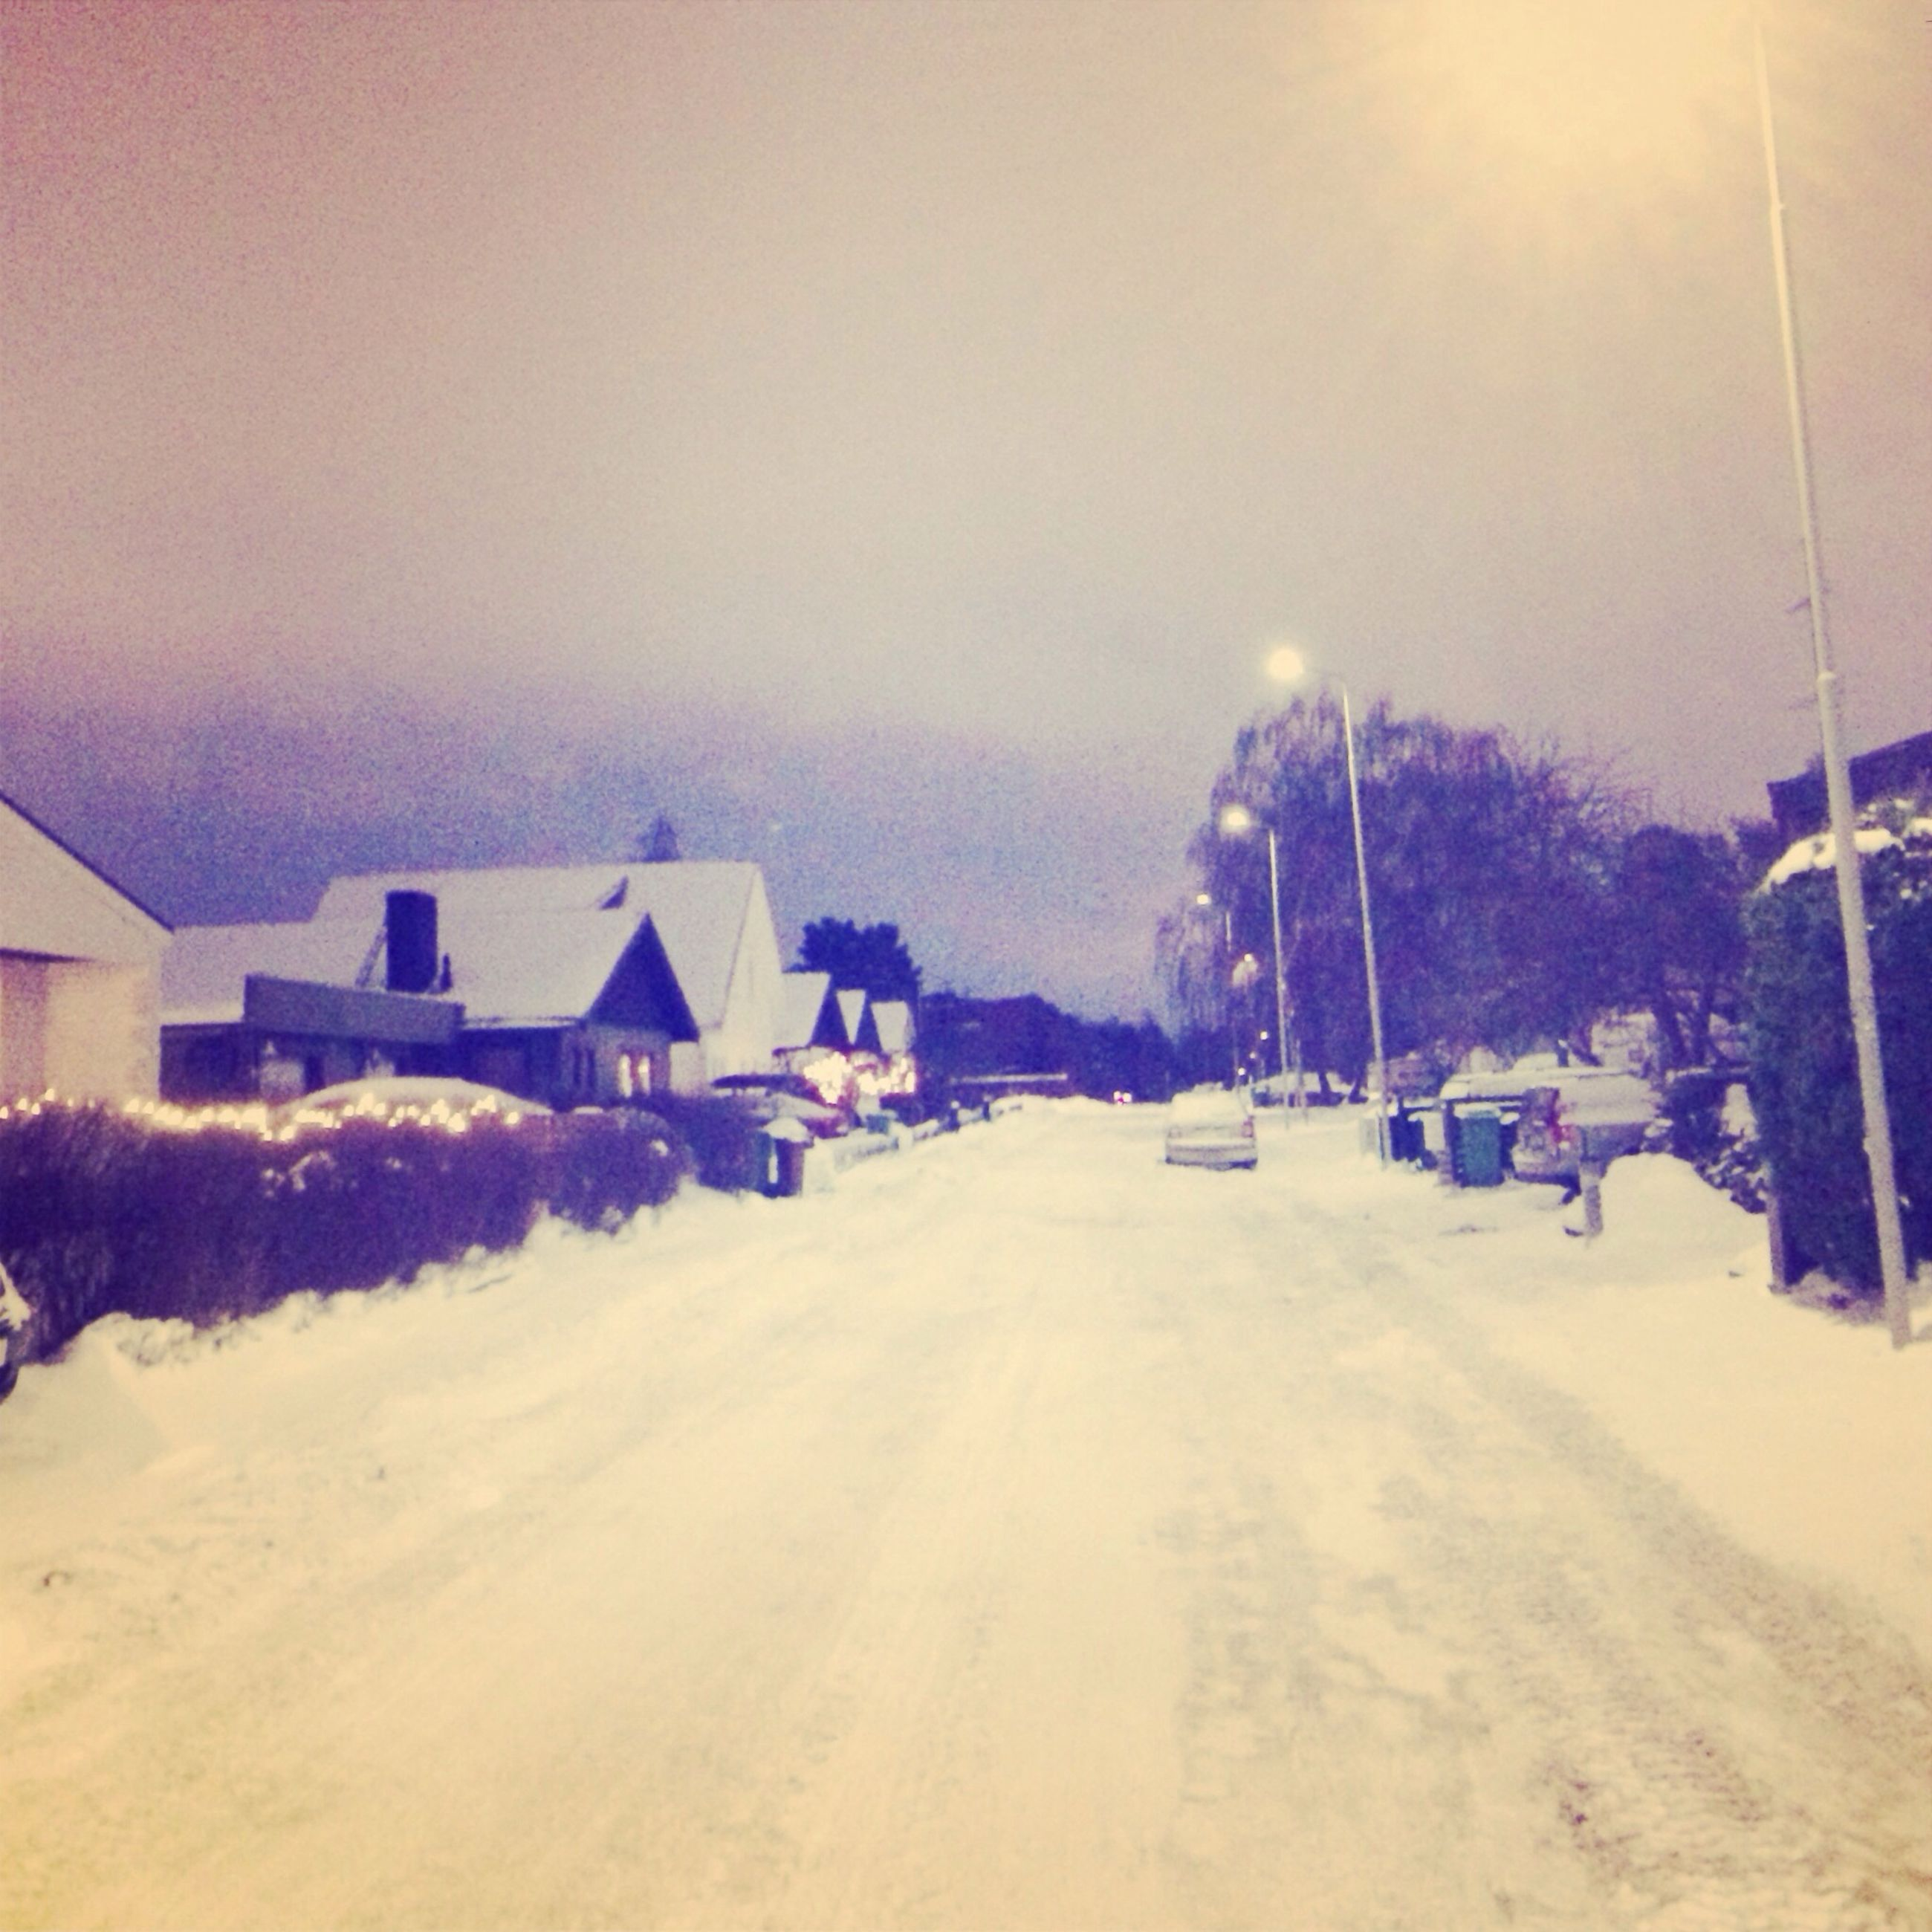 snow, winter, cold temperature, building exterior, architecture, built structure, weather, season, house, transportation, the way forward, road, sky, street, residential structure, car, land vehicle, covering, landscape, incidental people